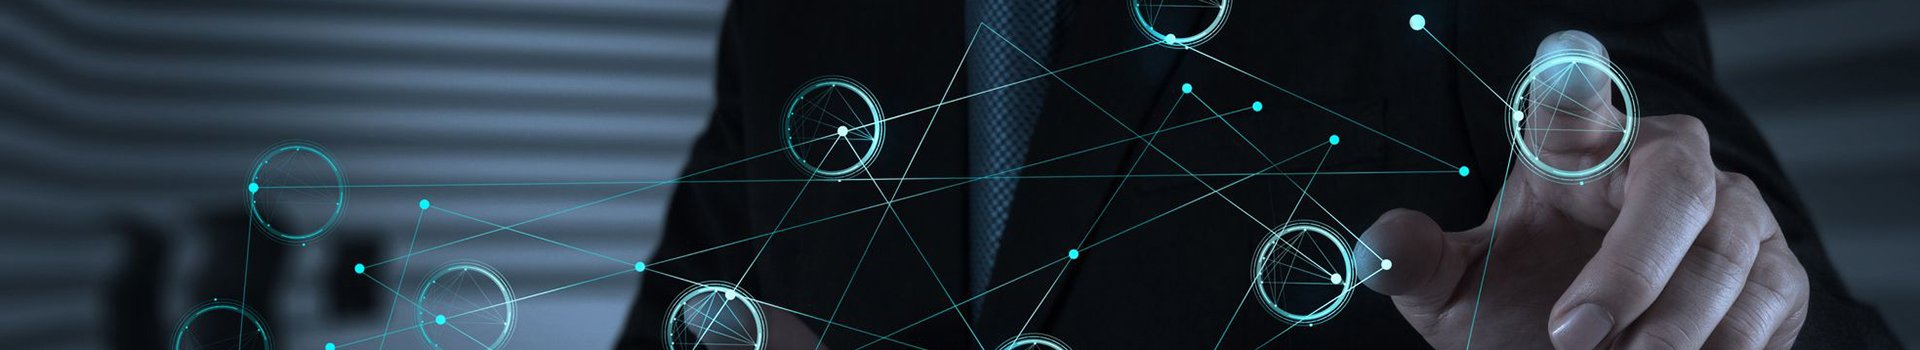 Man in business suit touching a node on a holographic interface that looks like a node on a network.